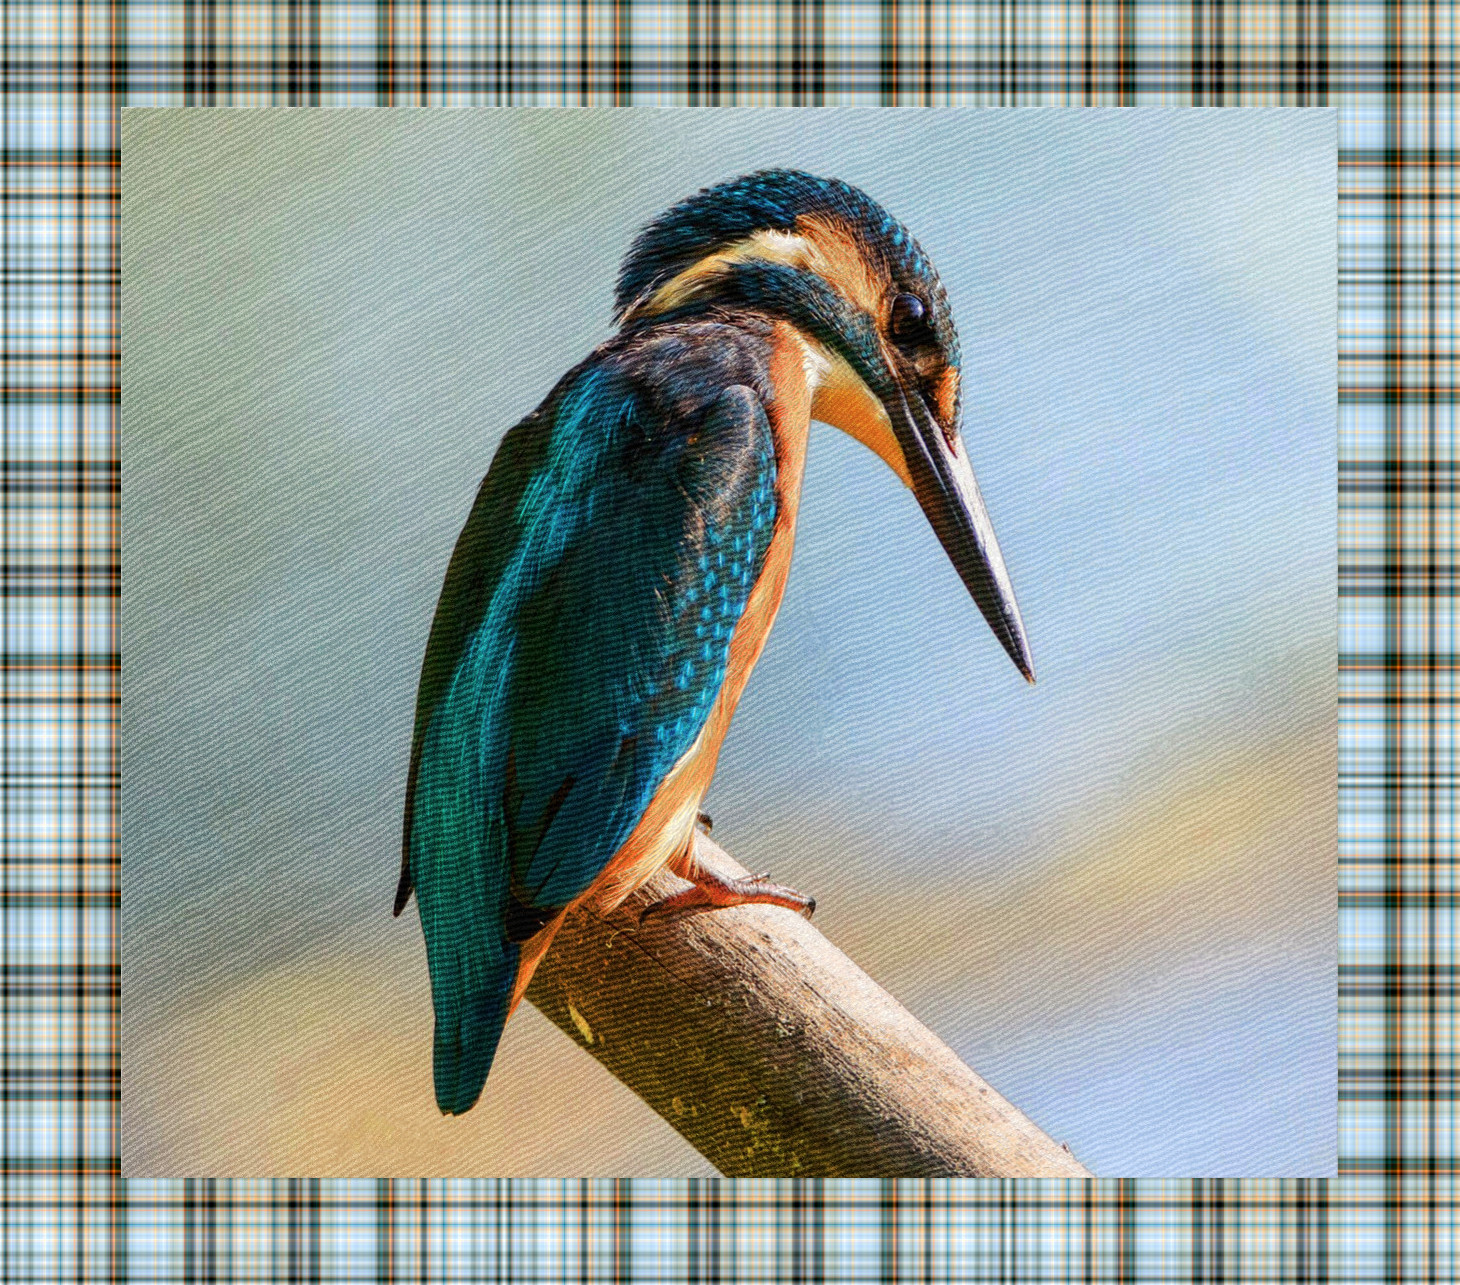 kingfisher_Original_DN_AnotherDrawingStyle_Simple+Nelo frame style.jpg